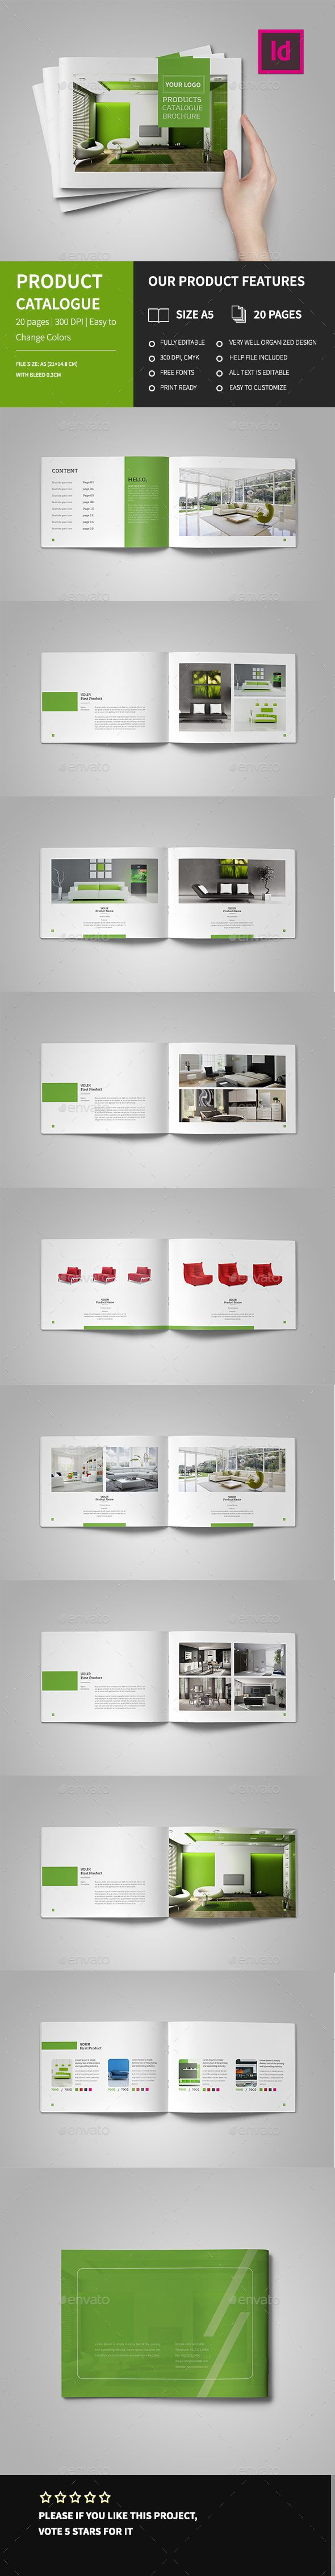 A5 Product Catalog Brochure Template InDesign INDD. Download here: http://graphicriver.net/item/a5-product-catalog-brochure/15212804?ref=ksioks